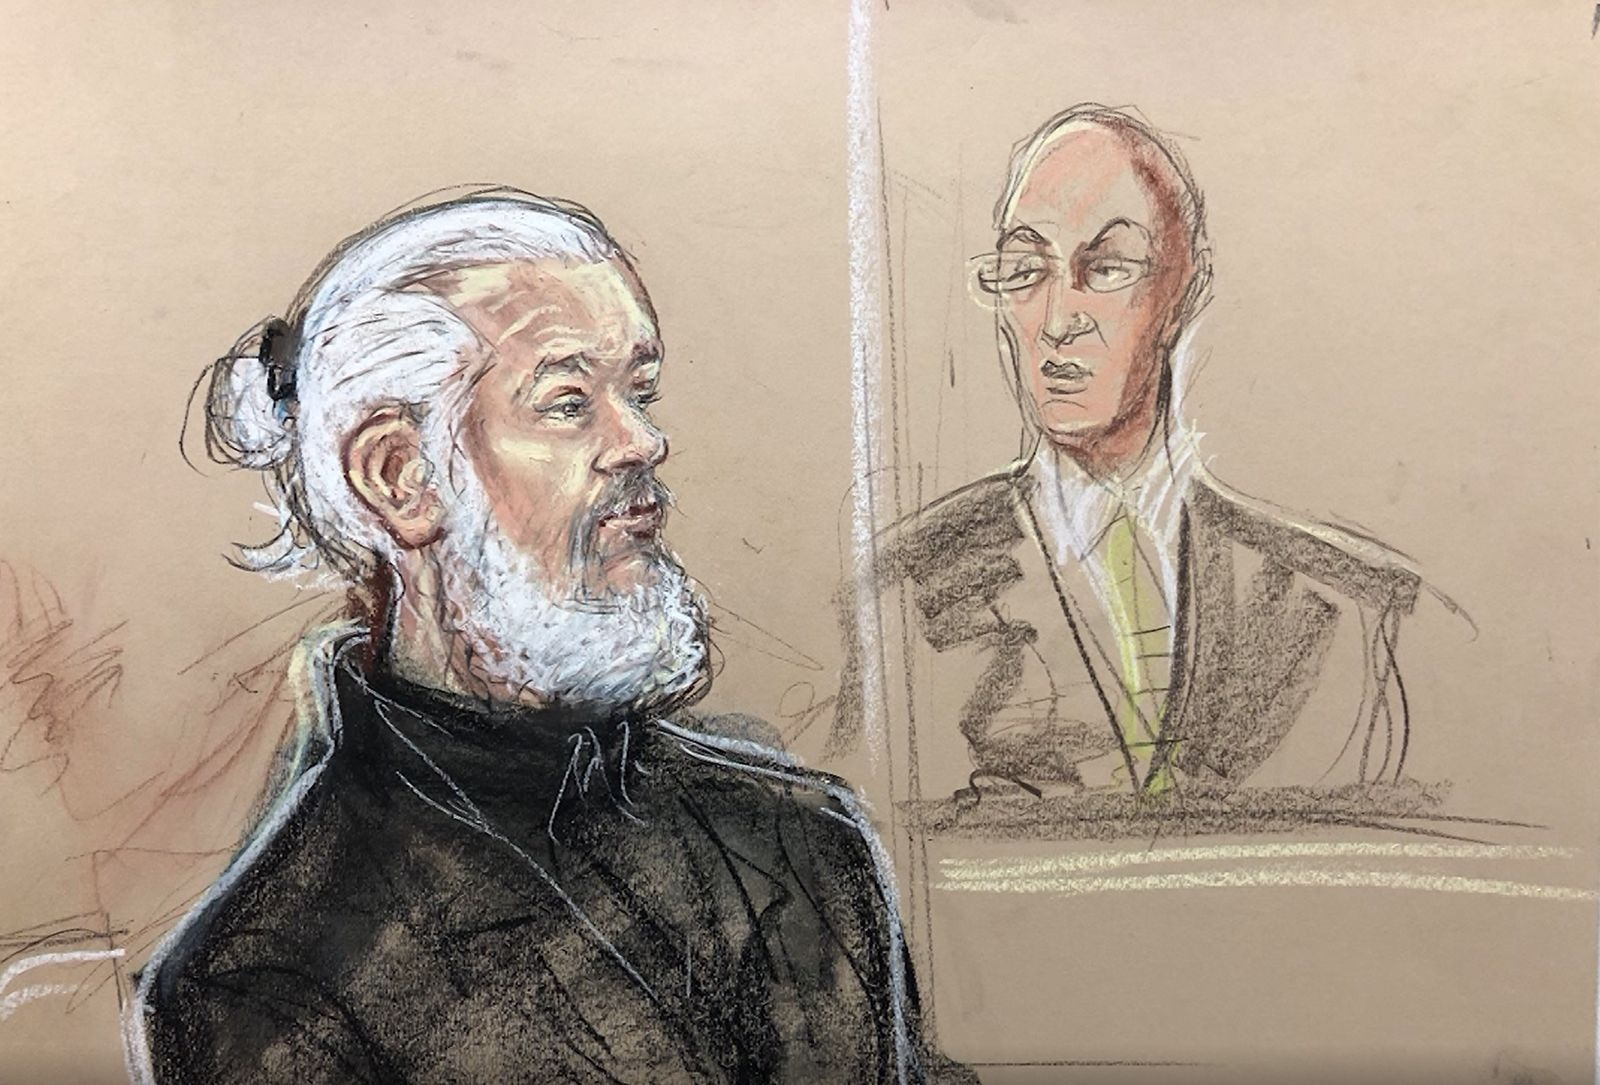 A sketch of Julian Assange in court in London on Apr. 11, 2019 after his arrest at the Ecuadorian embassy. (Priscilla Coleman, MB Media/CNN Newsource)<p></p>